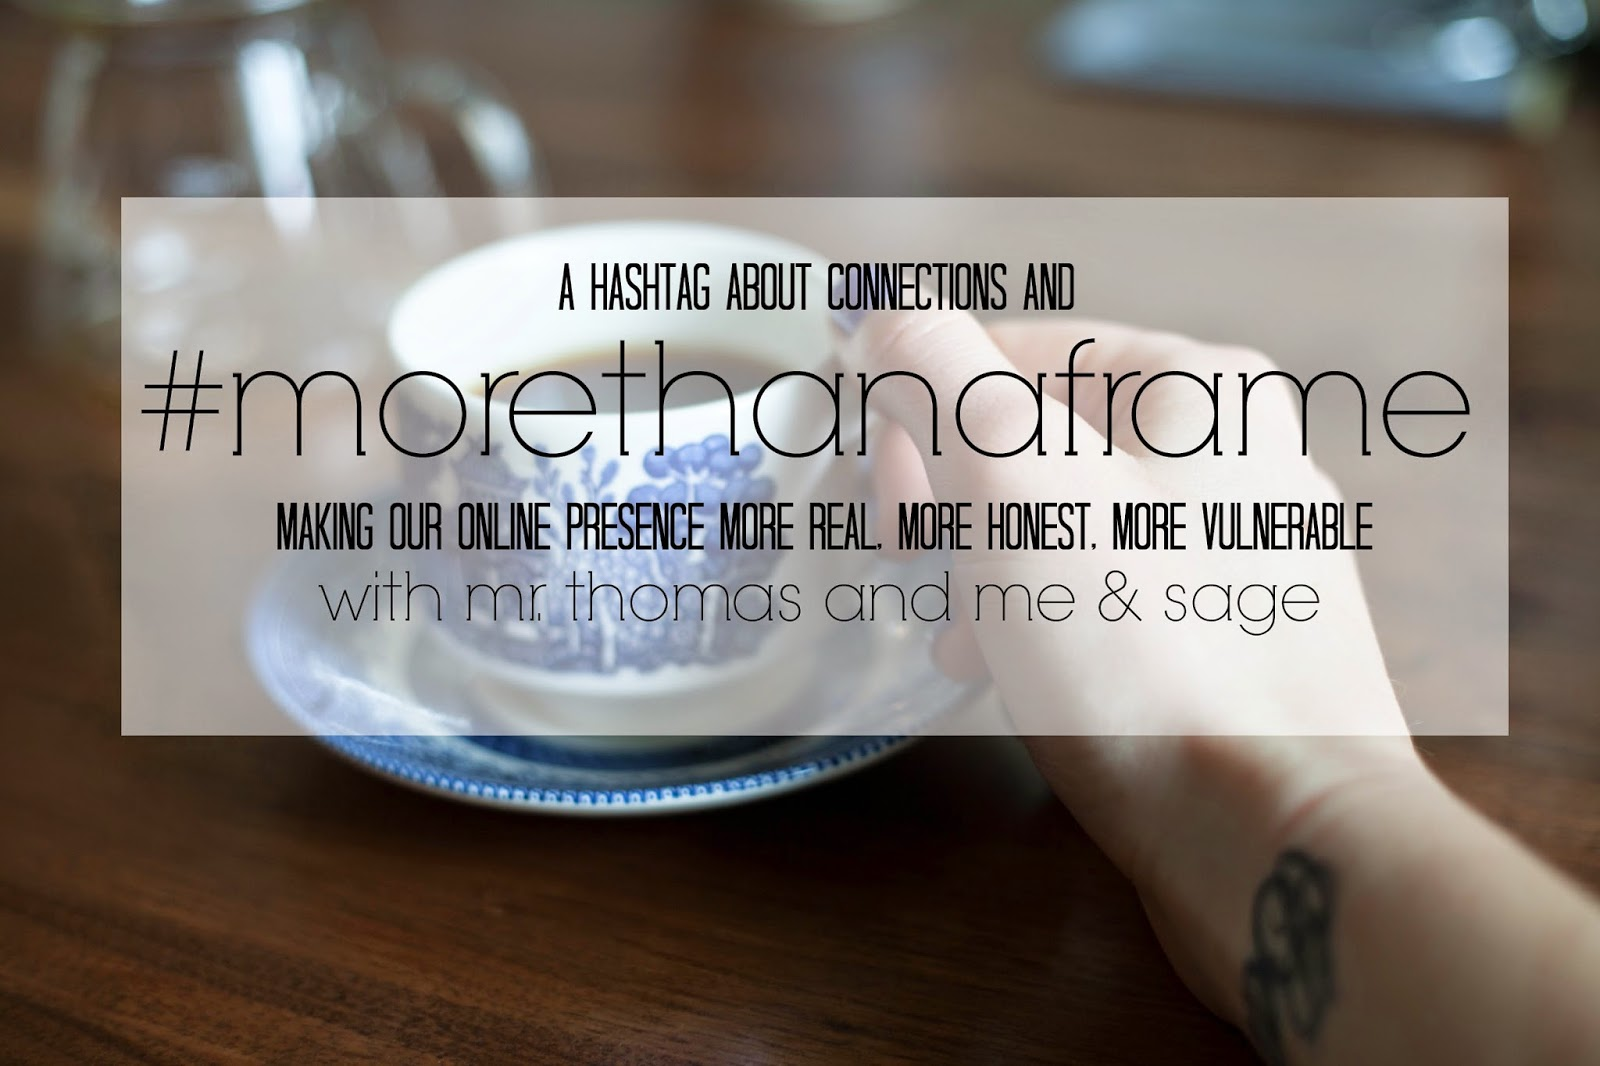 #morethanaframe an instagram hashtag for building community